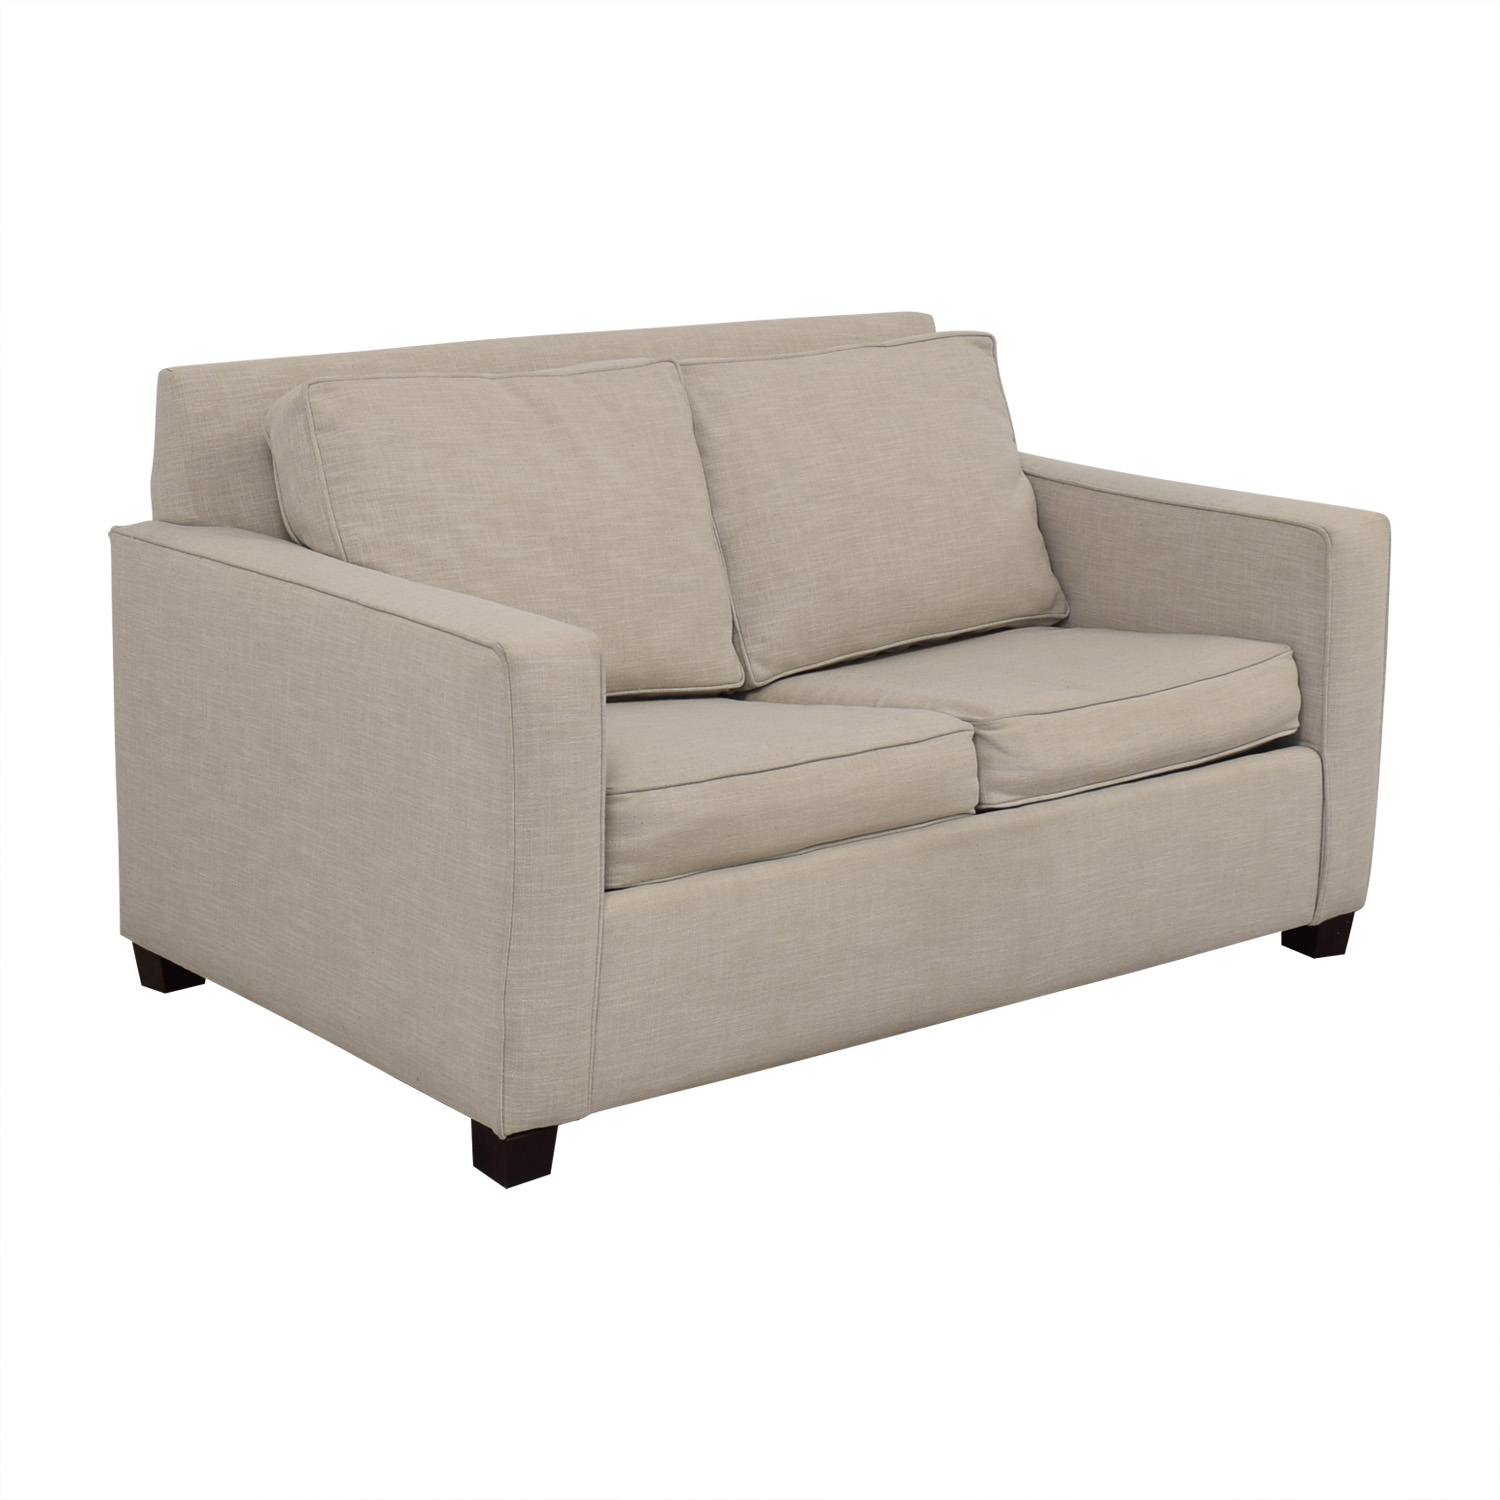 West Elm Henry Grey Loveseat with Twin Pullout Convertible West Elm